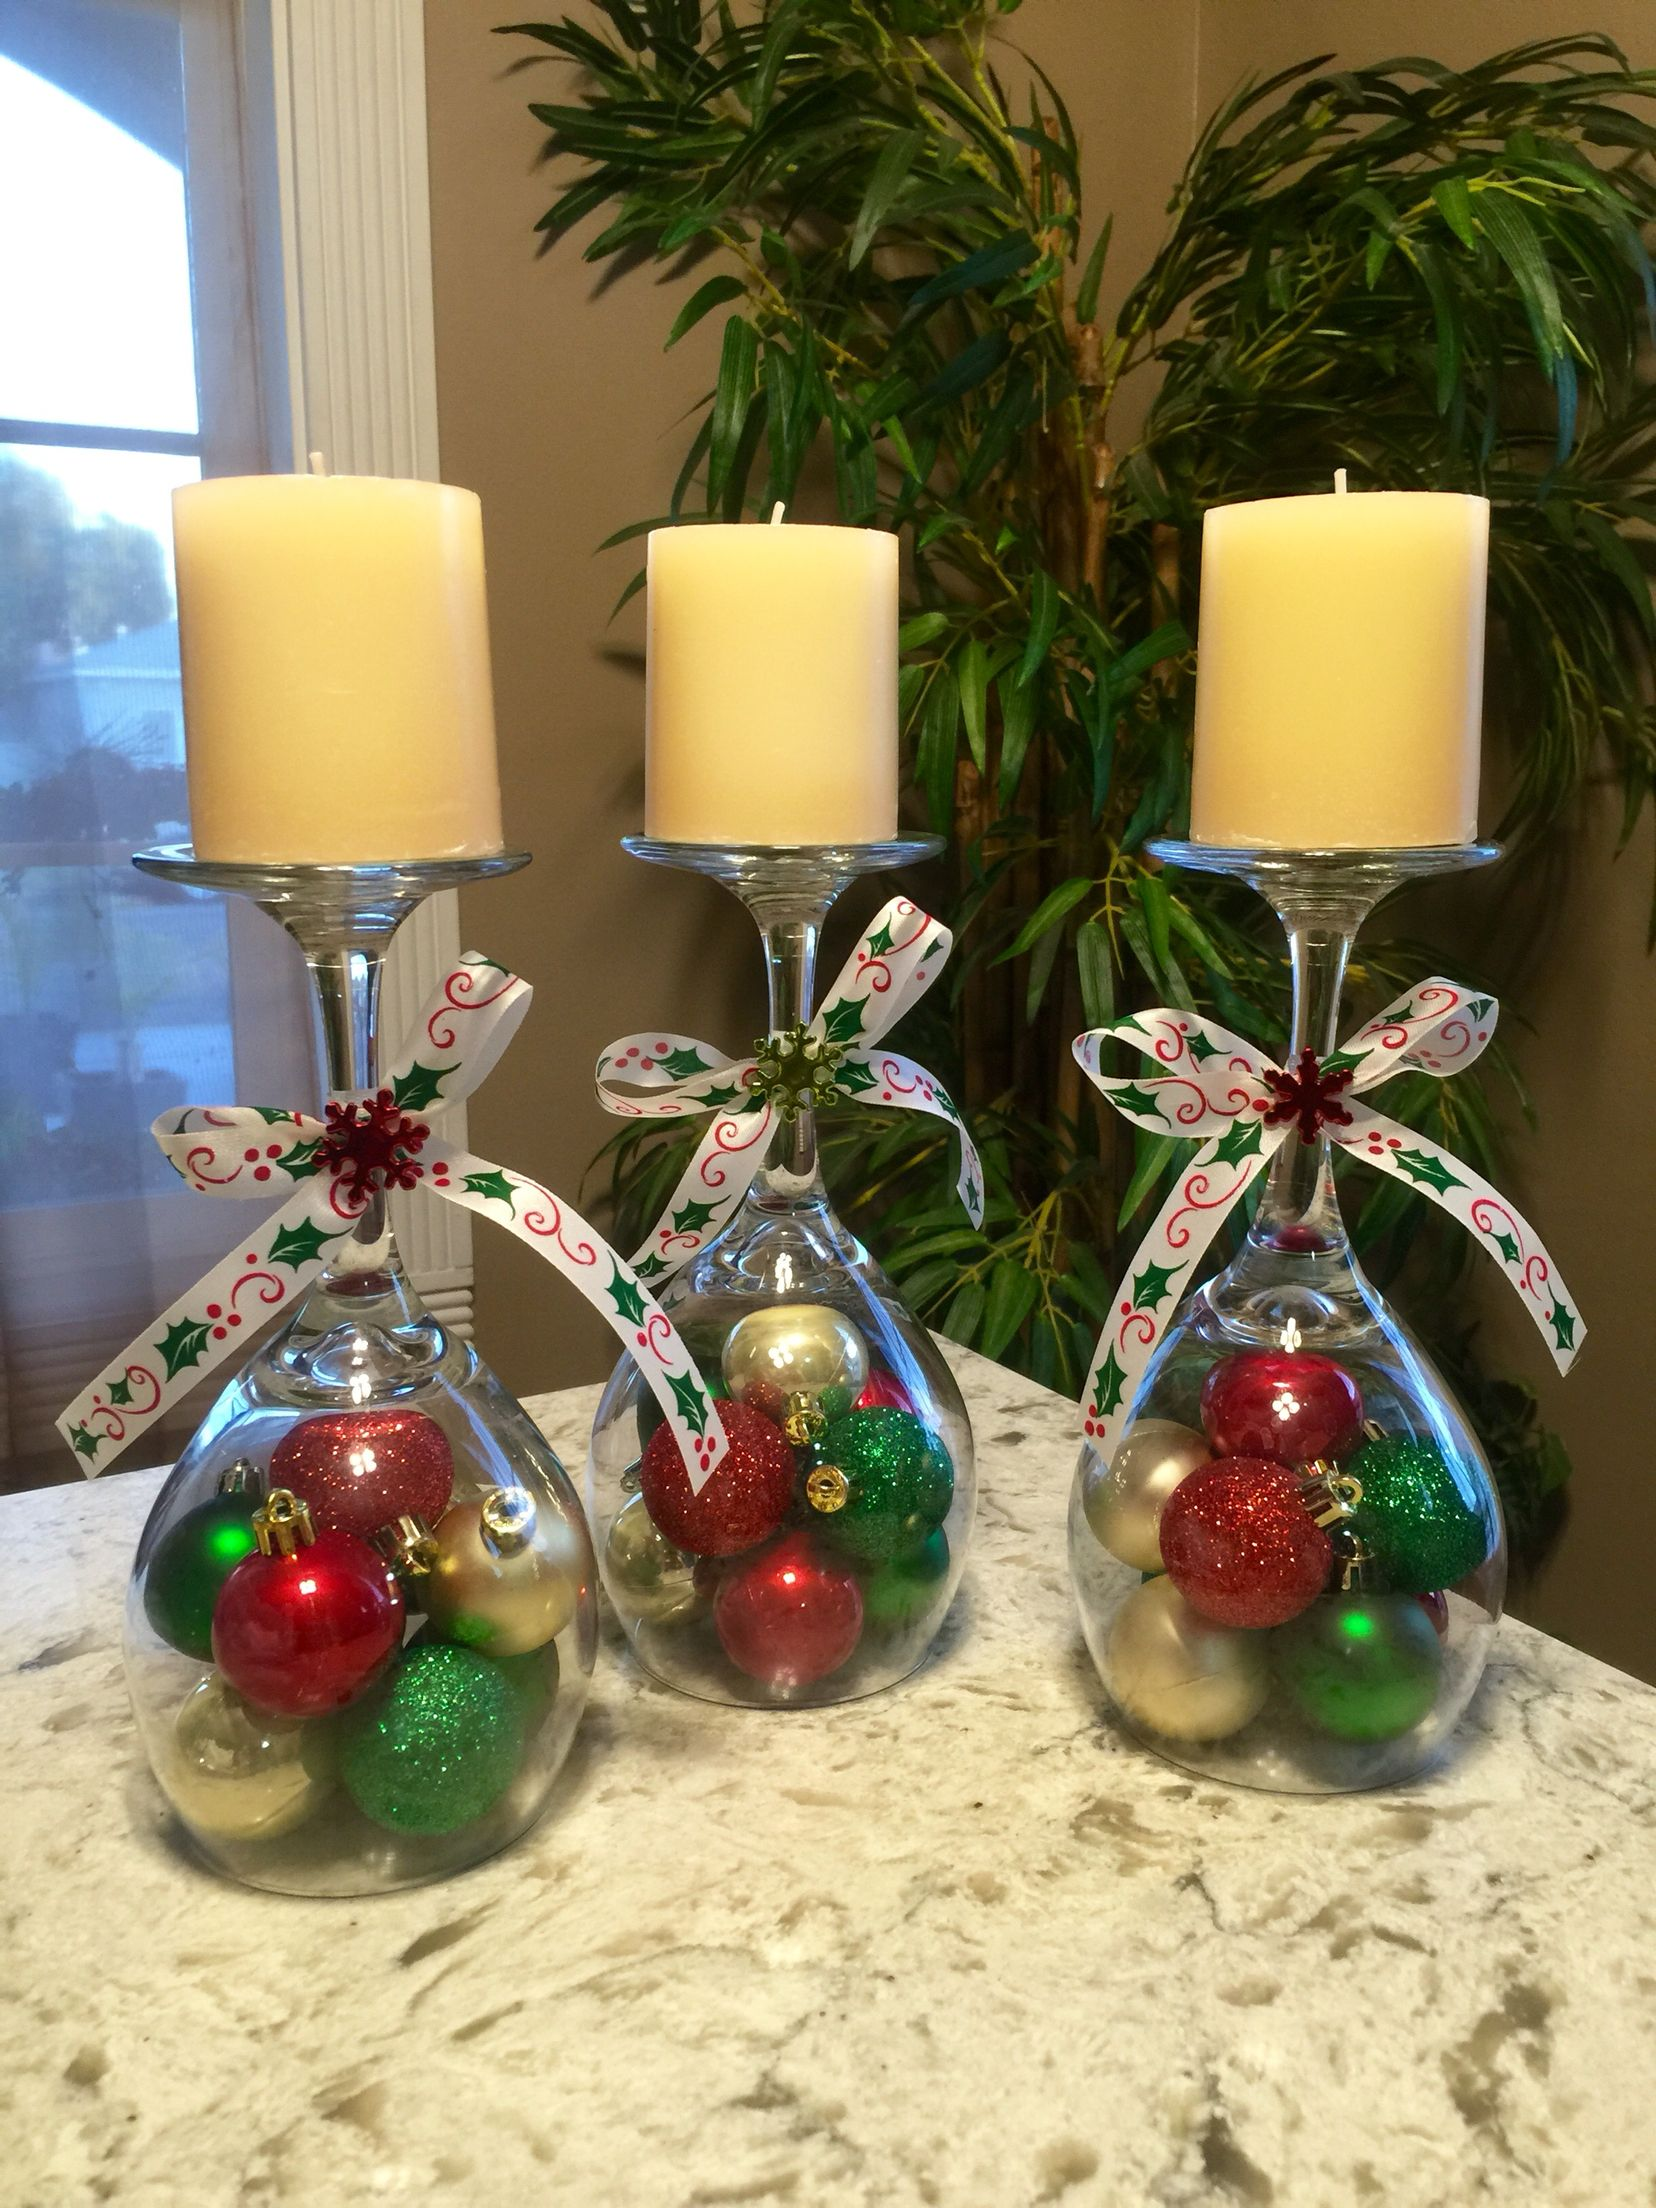 DIY Dollar Tree Christmas Centerpieces / Decorations